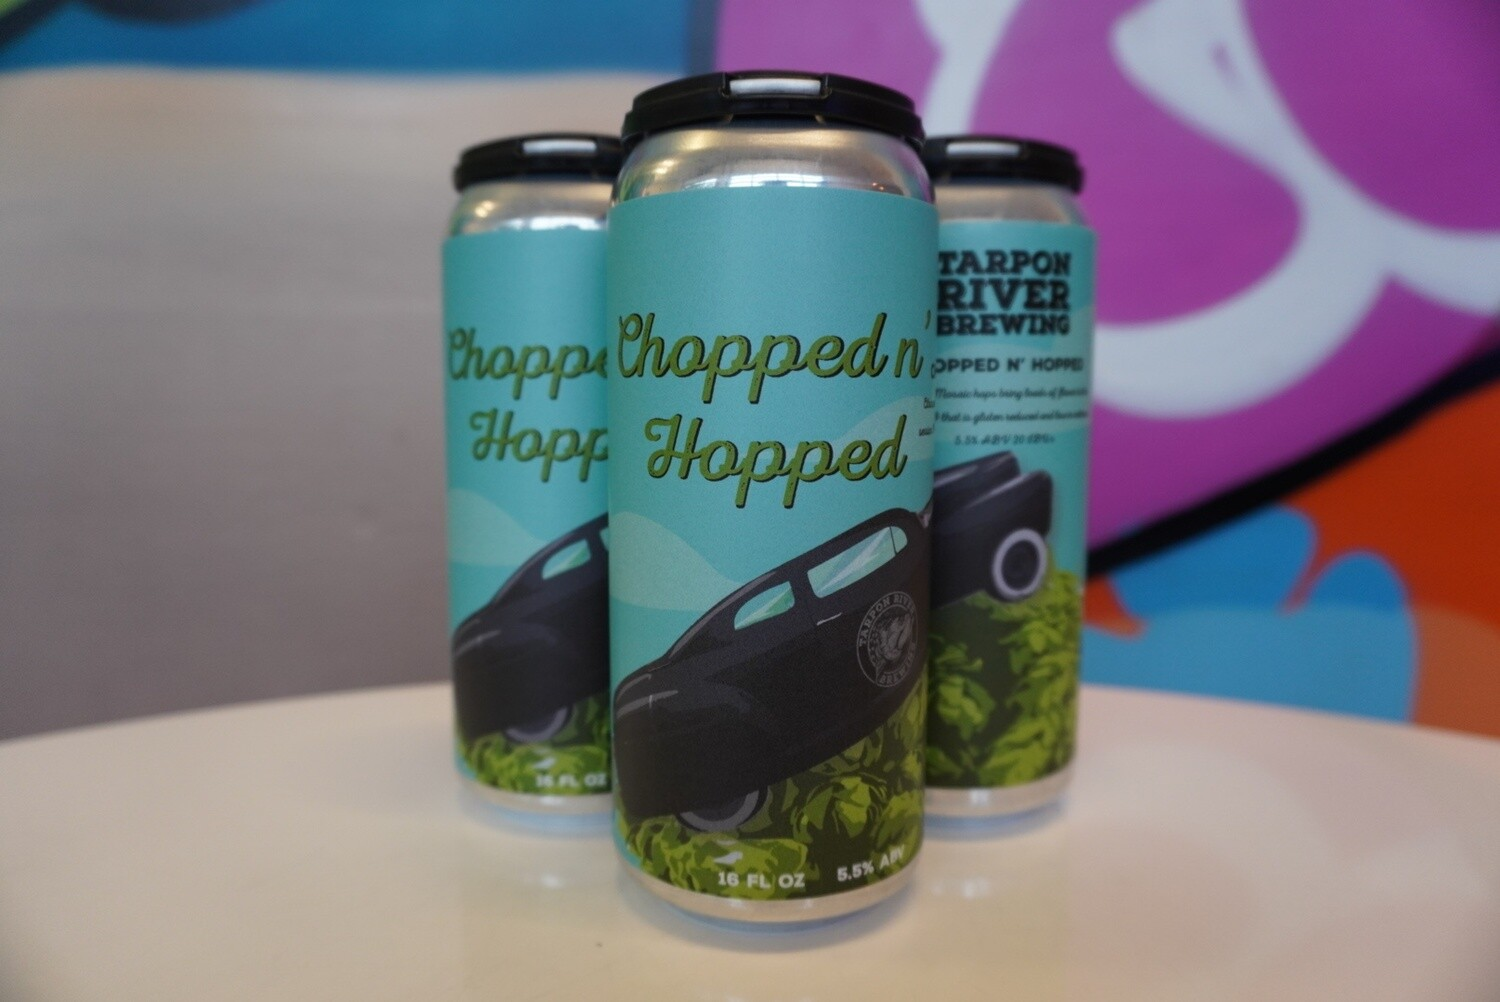 Tarpon River Brewing - Chopped and Hopped - Session IPA - 5% ABV - 4 Pack